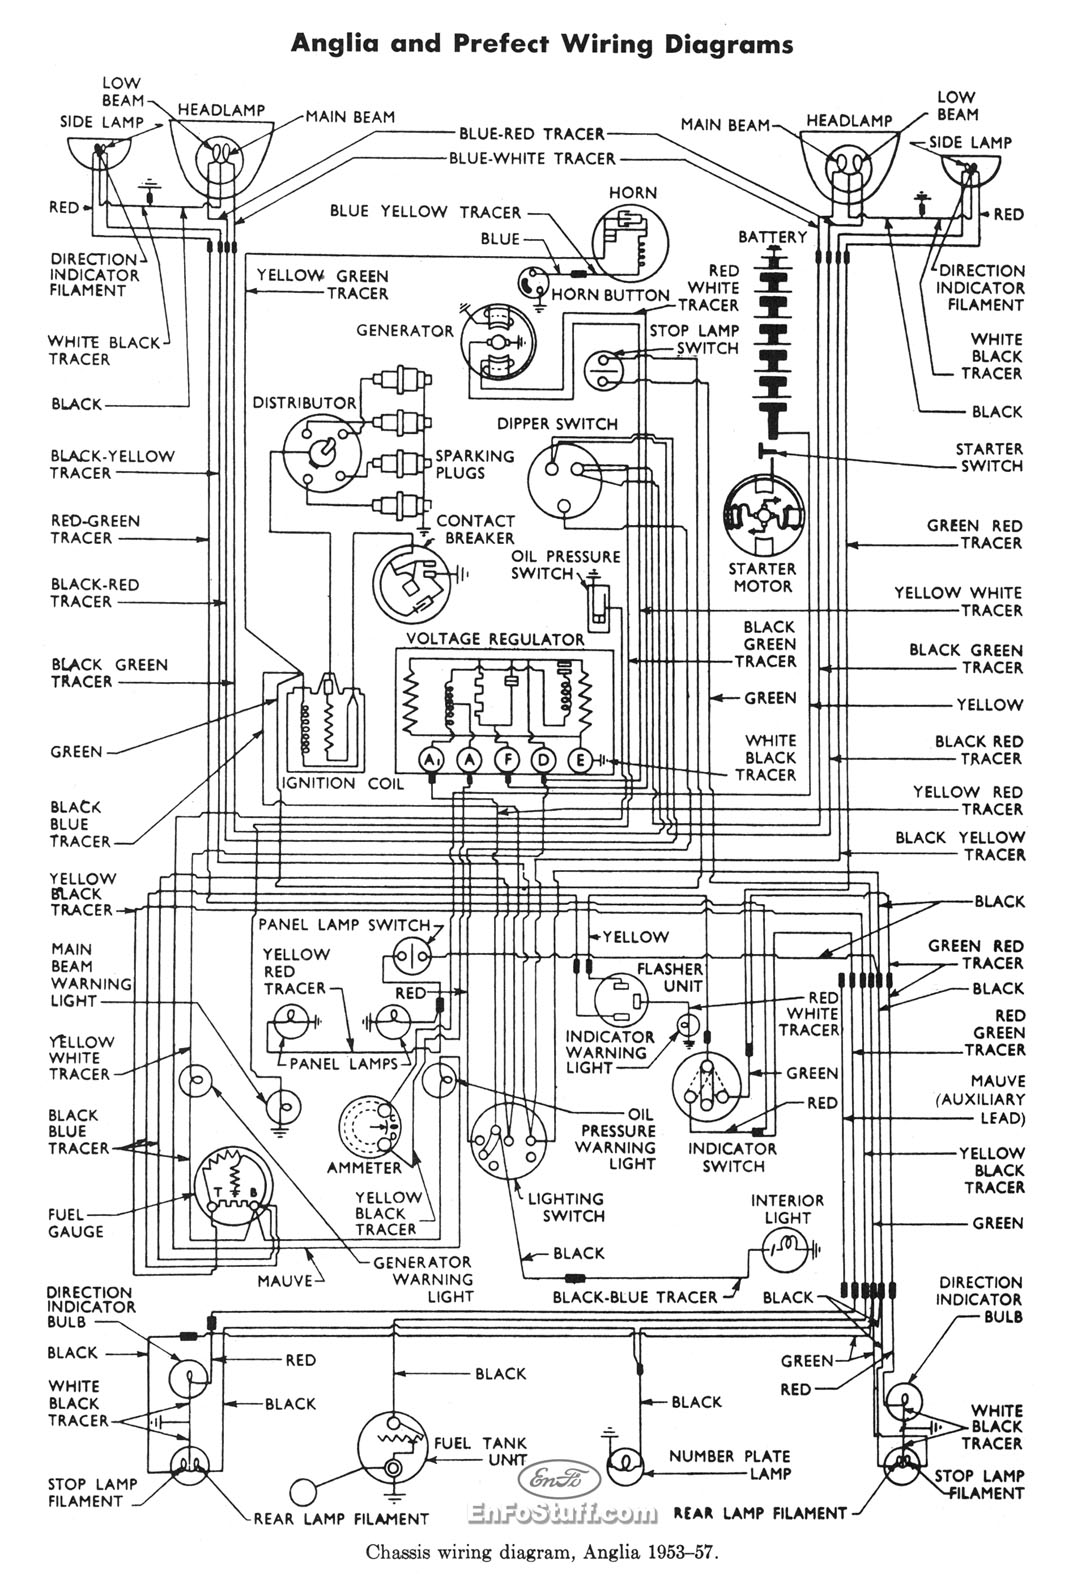 [DIAGRAM_4FR]  DIAGRAM] John Deere 7700 Wiring Diagram FULL Version HD Quality Wiring  Diagram - THROATDIAGRAM.SAINTMIHIEL-TOURISME.FR | John Deere 7800 Wiring Diagram |  | Saintmihiel-tourisme.fr